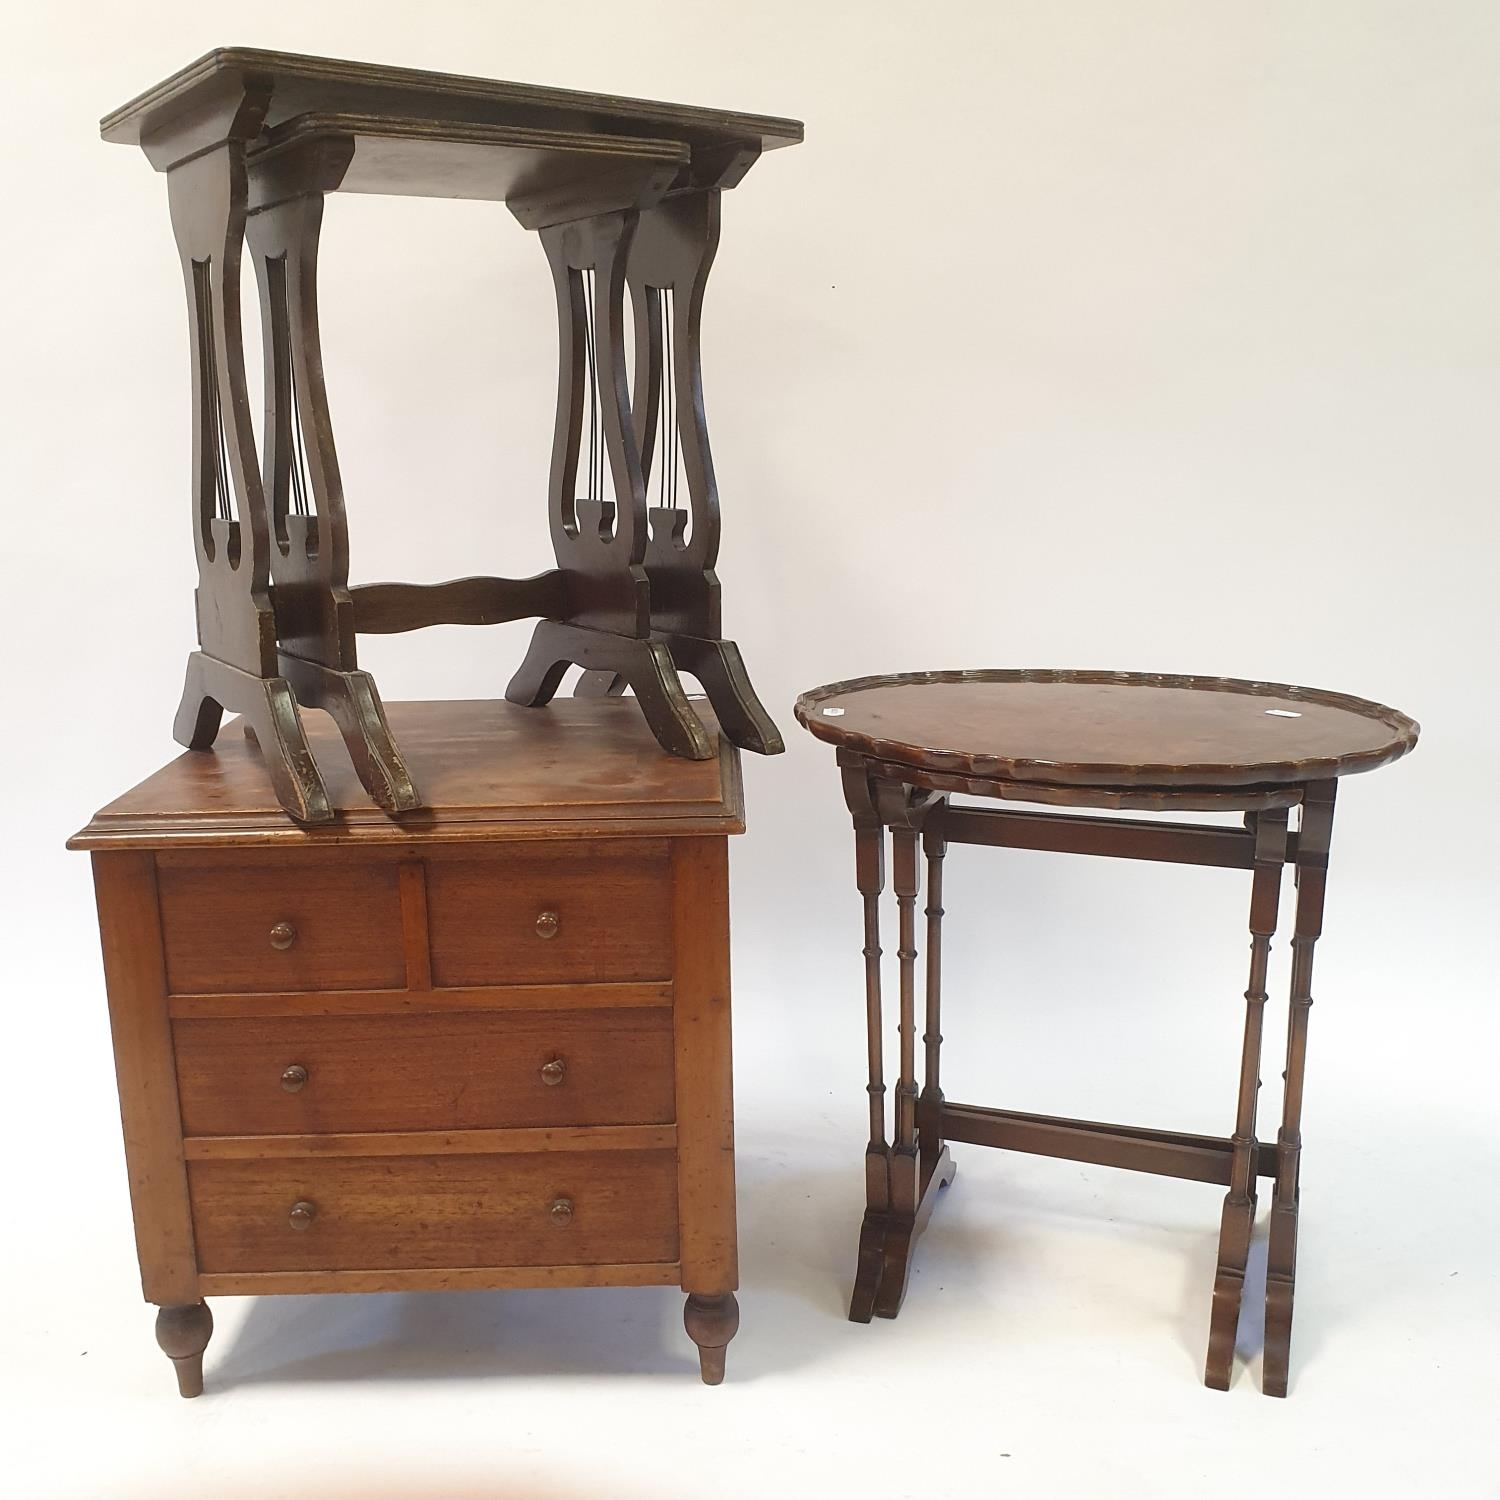 A 19th century mahogany wine table, 53 cm diameter, a commode, two nests of two tables, and a